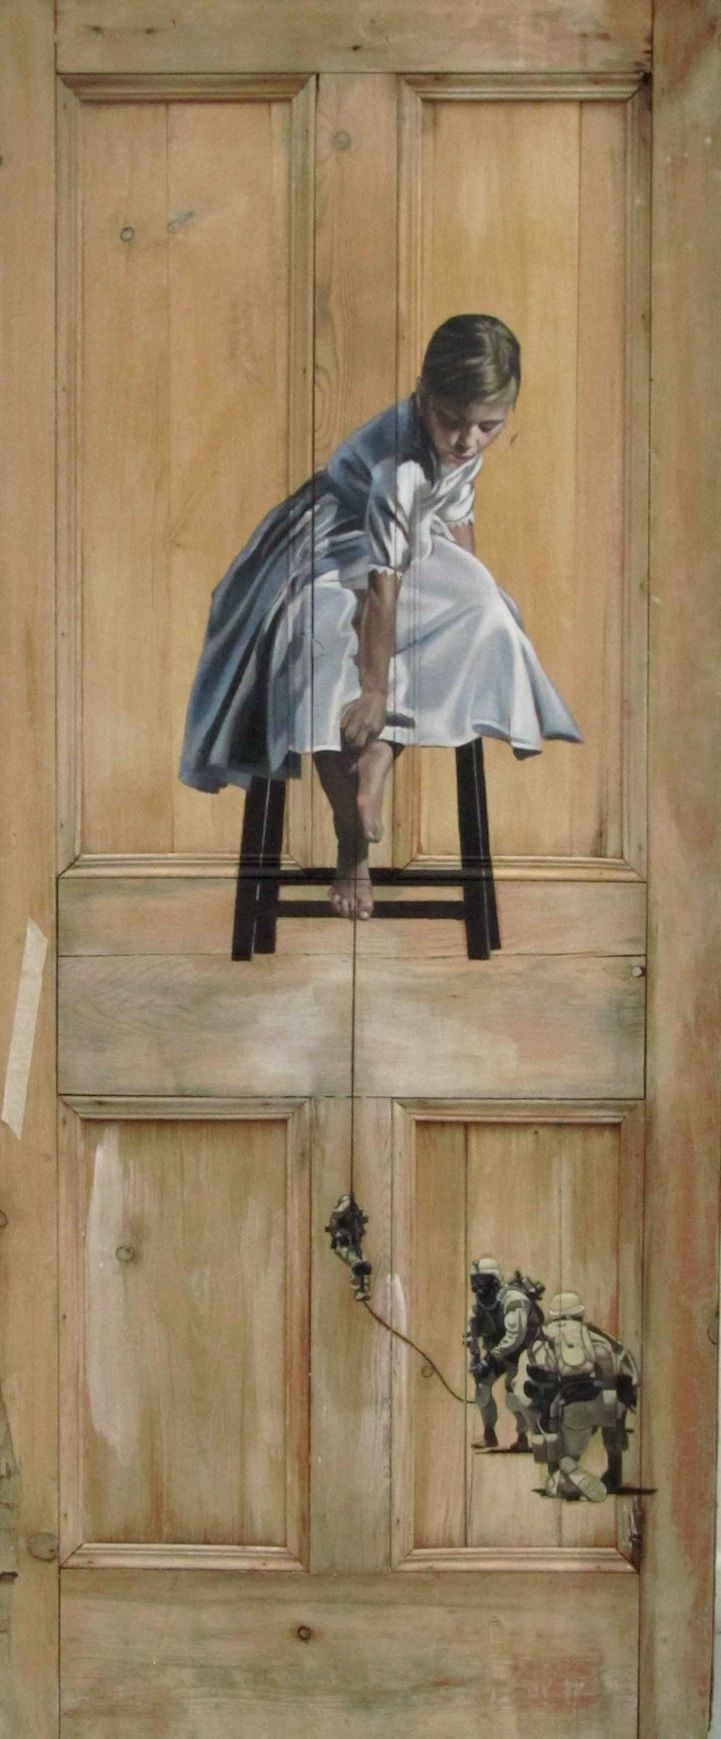 """The latest exhibition of Peter Hawkins is a series of paintings on doors. The work of the painter can be seen in The Outsiders Gallery in London from 26 April . """"The doors contain many meanings and not just transitive points in our lives . They have an inherent sense of nostalgia. As a children's writer CS Lewis well knew , is persuasive suggestion of what might be behind them , """"said the artist."""